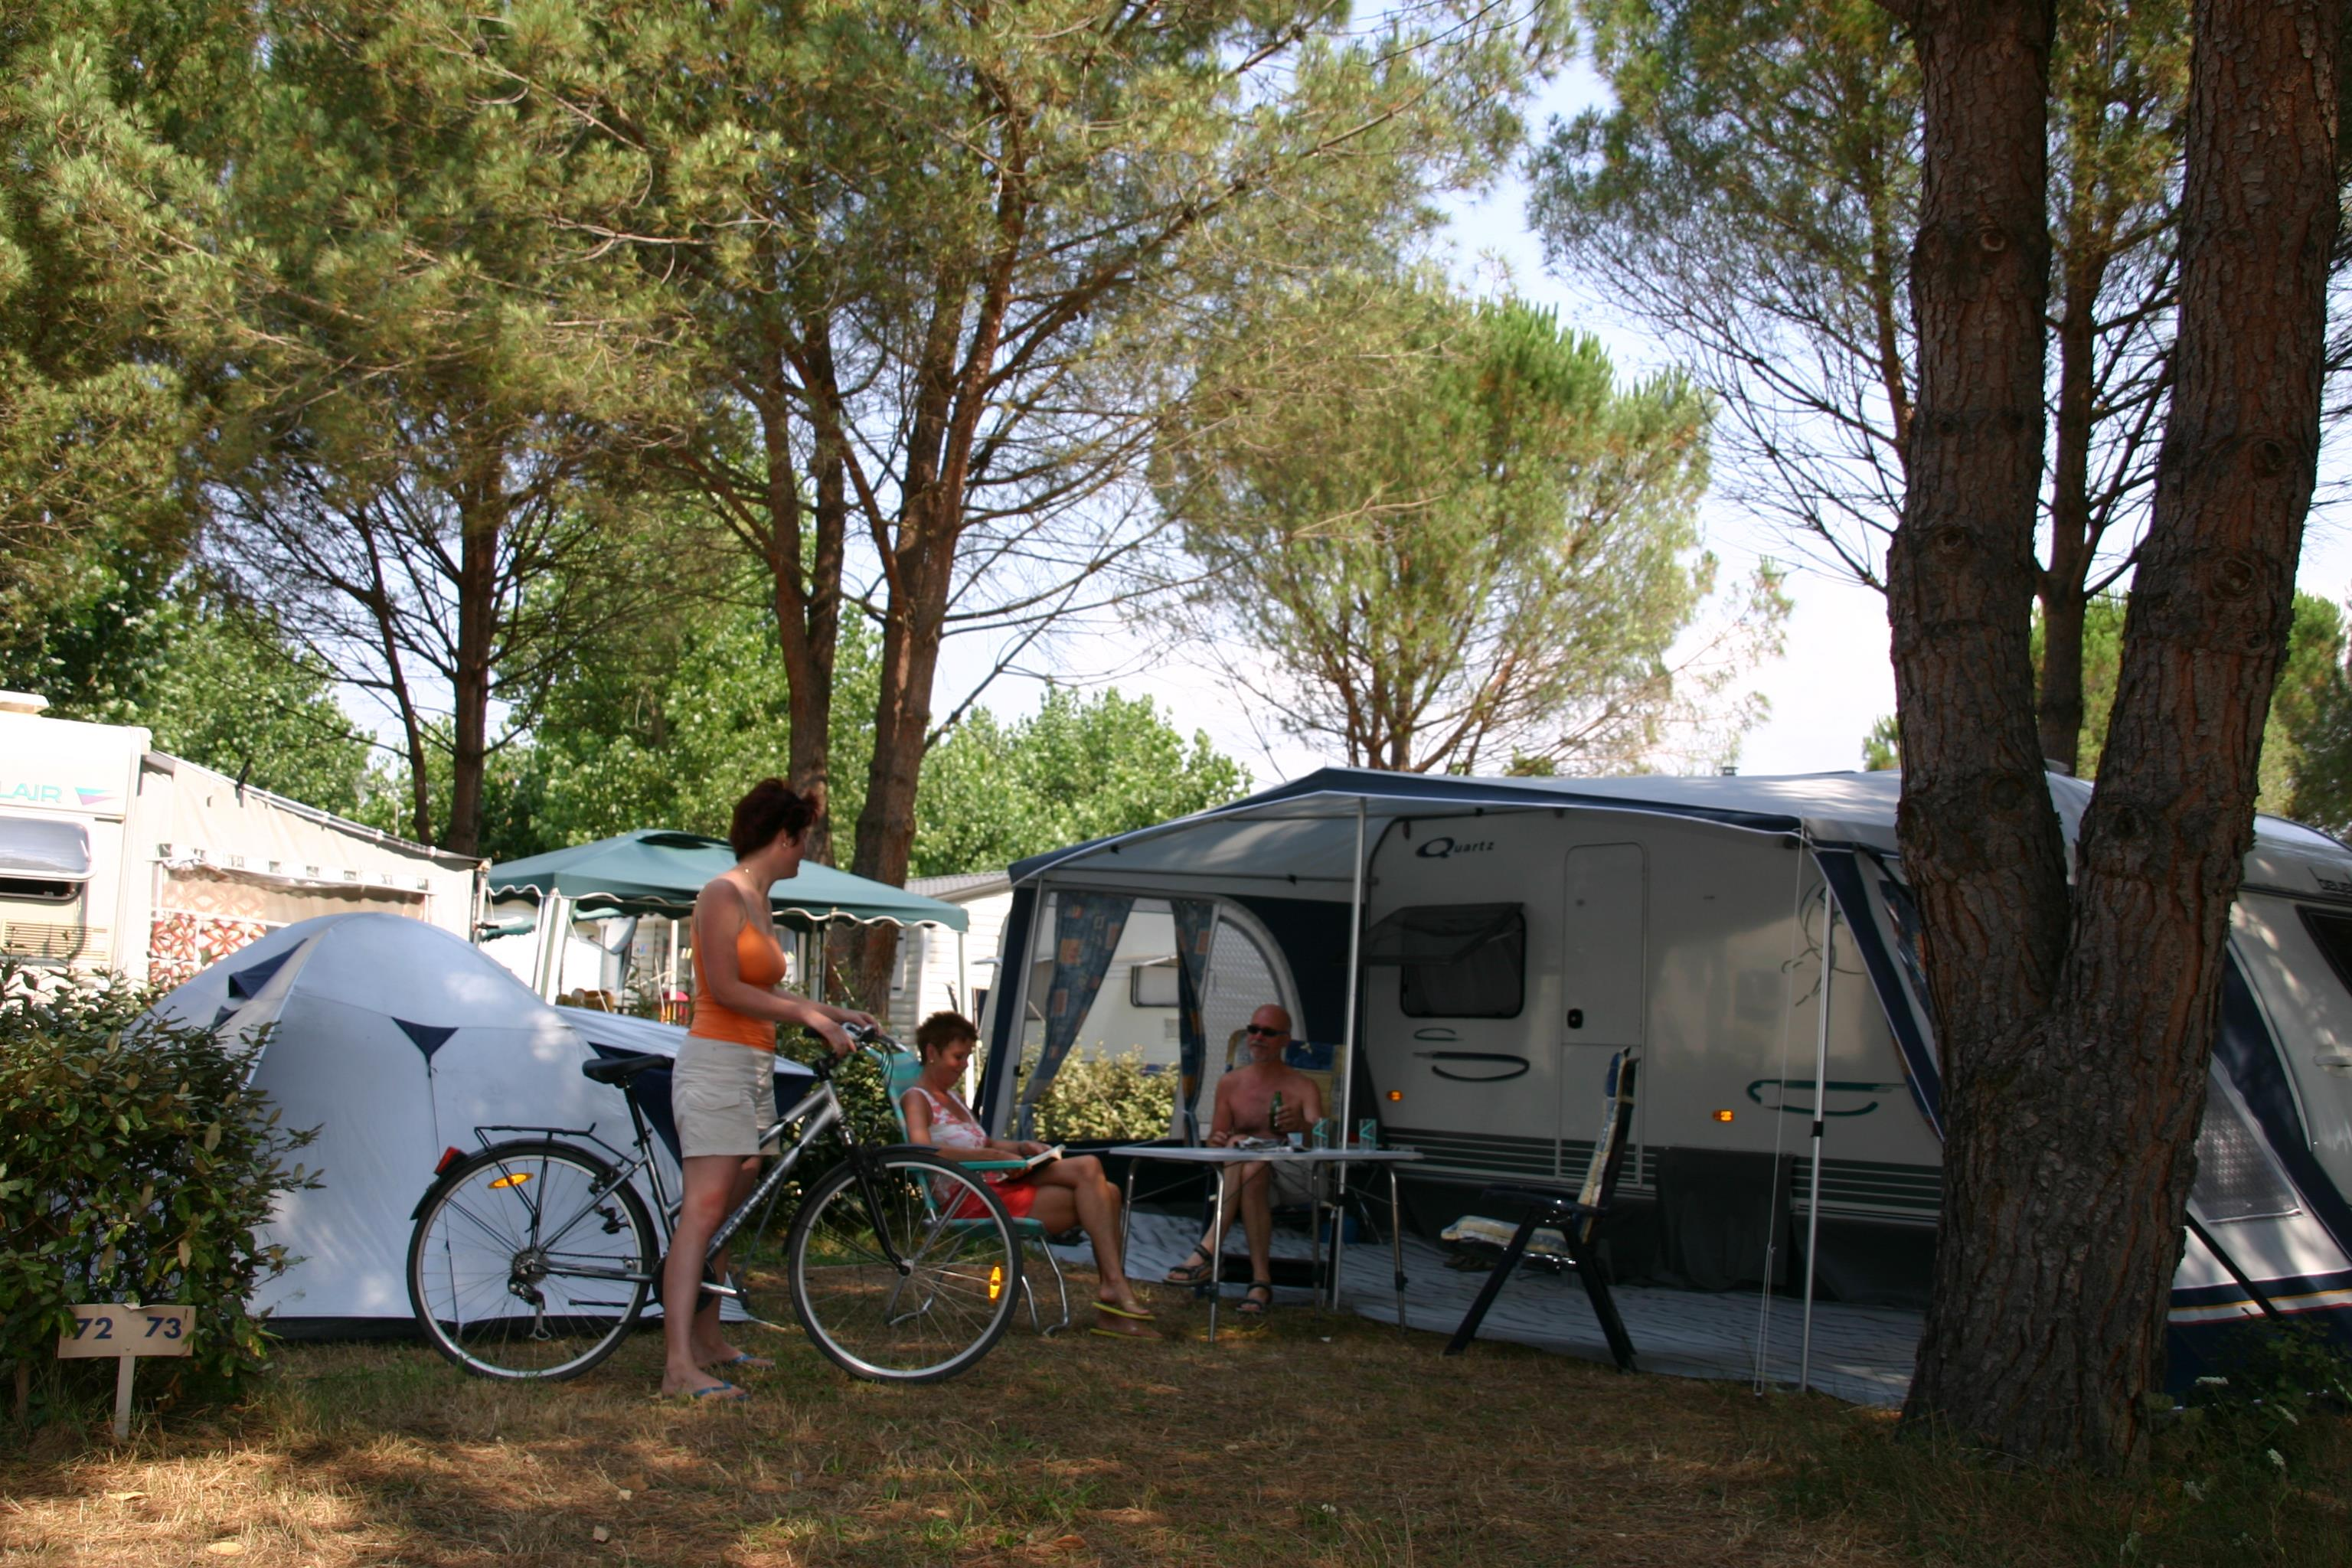 Emplacement - Emplacement Camping - Camping de Vaudois